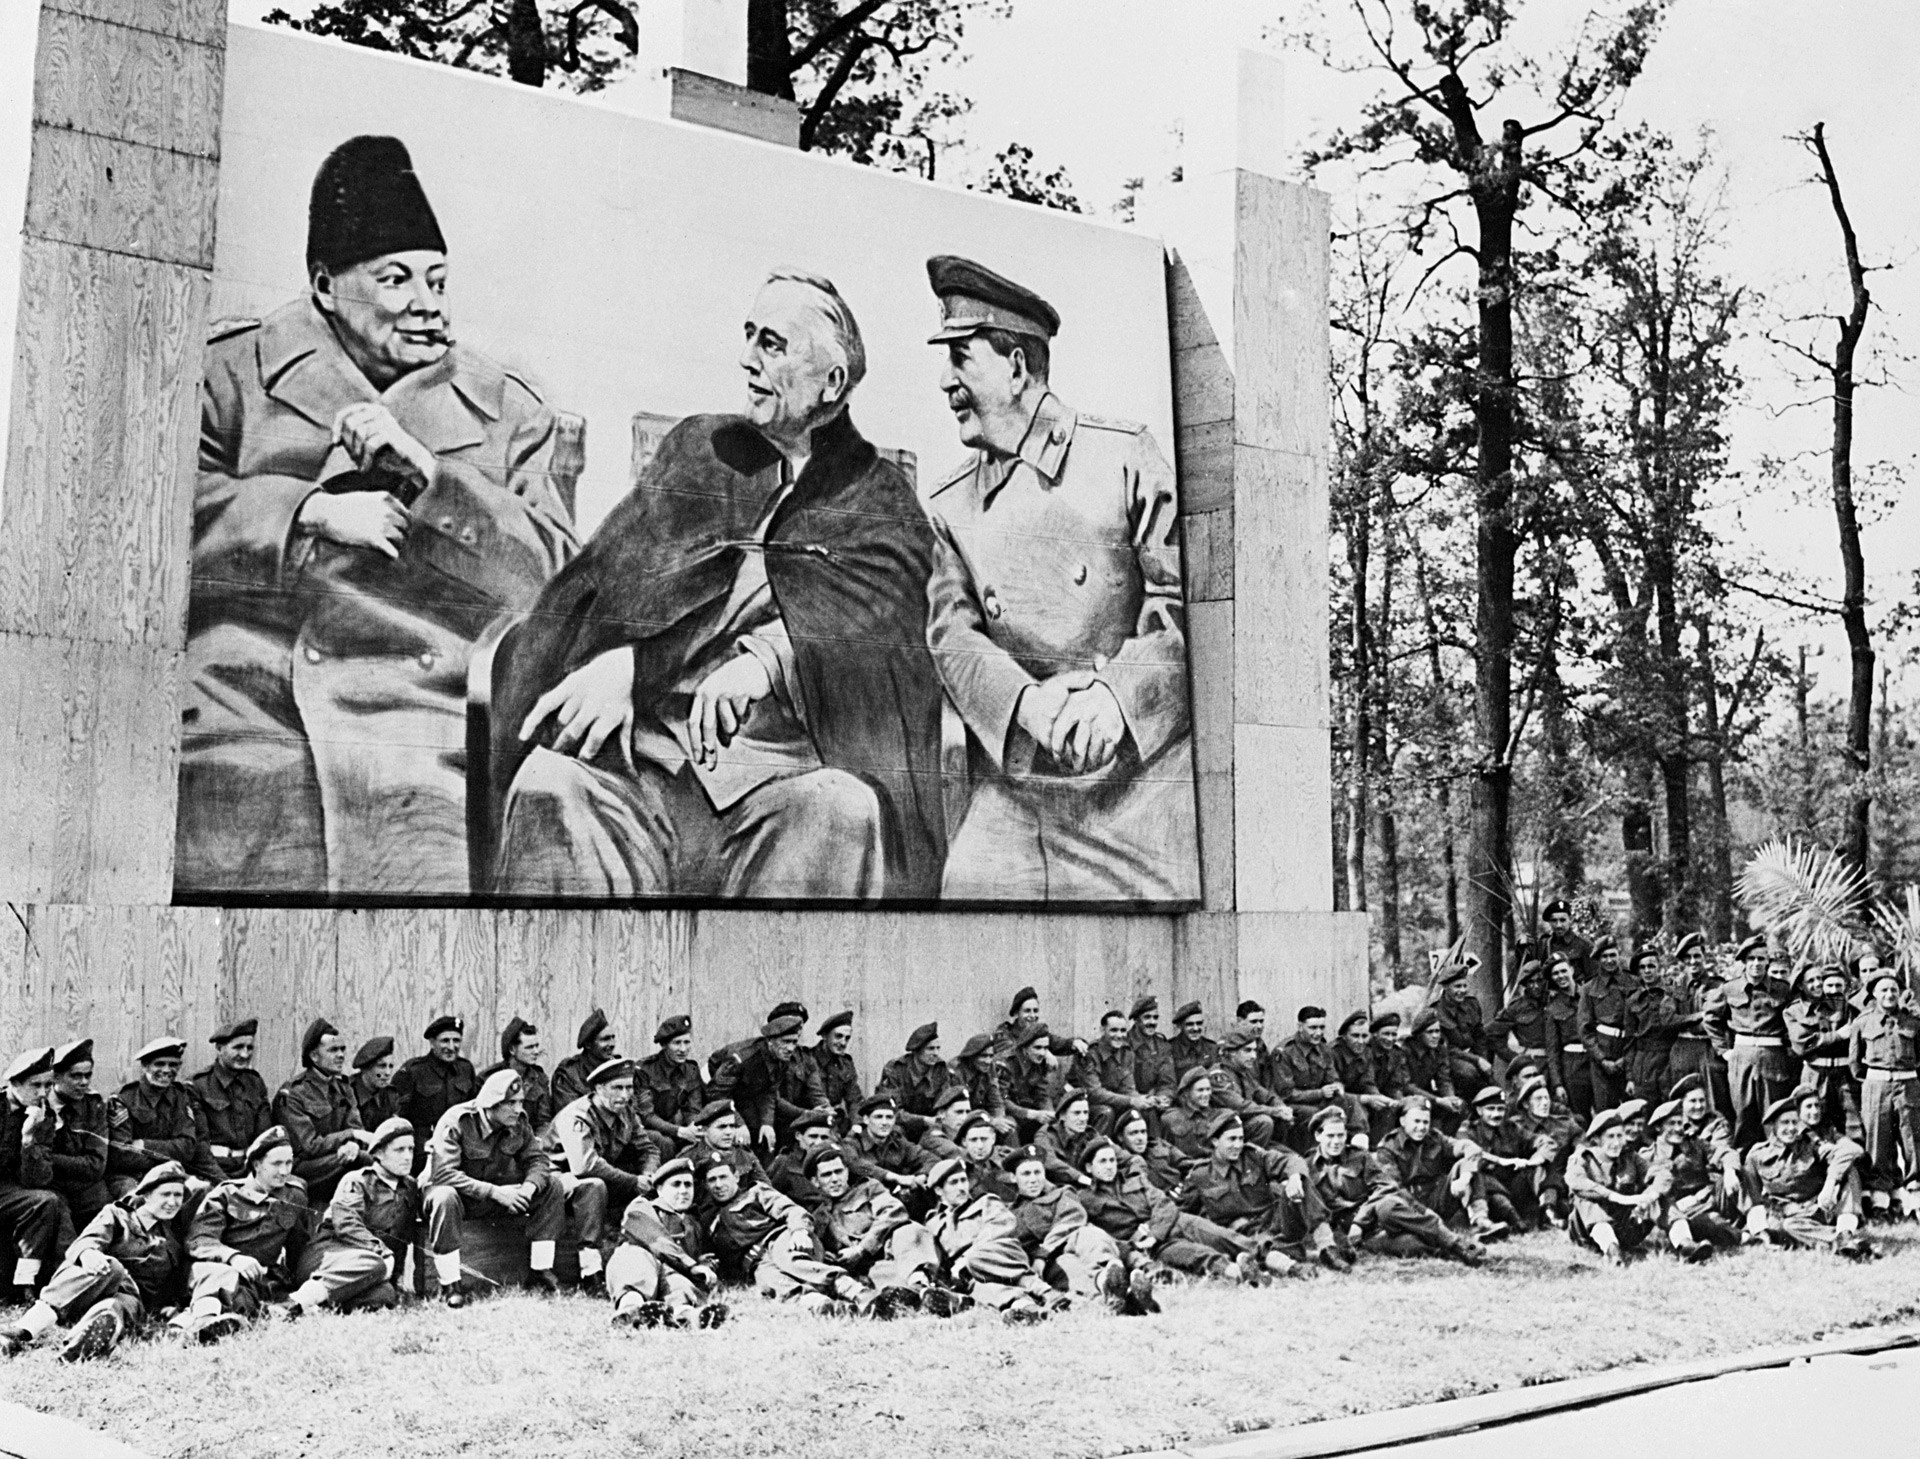 British troops taking part in an Allied Victory Parade in Berlin rest beneath a large poster of Churchill, Roosevelt, and Stalin at Yalta. Soon after winning the war, the relations between the Allies deteriorated all over again.